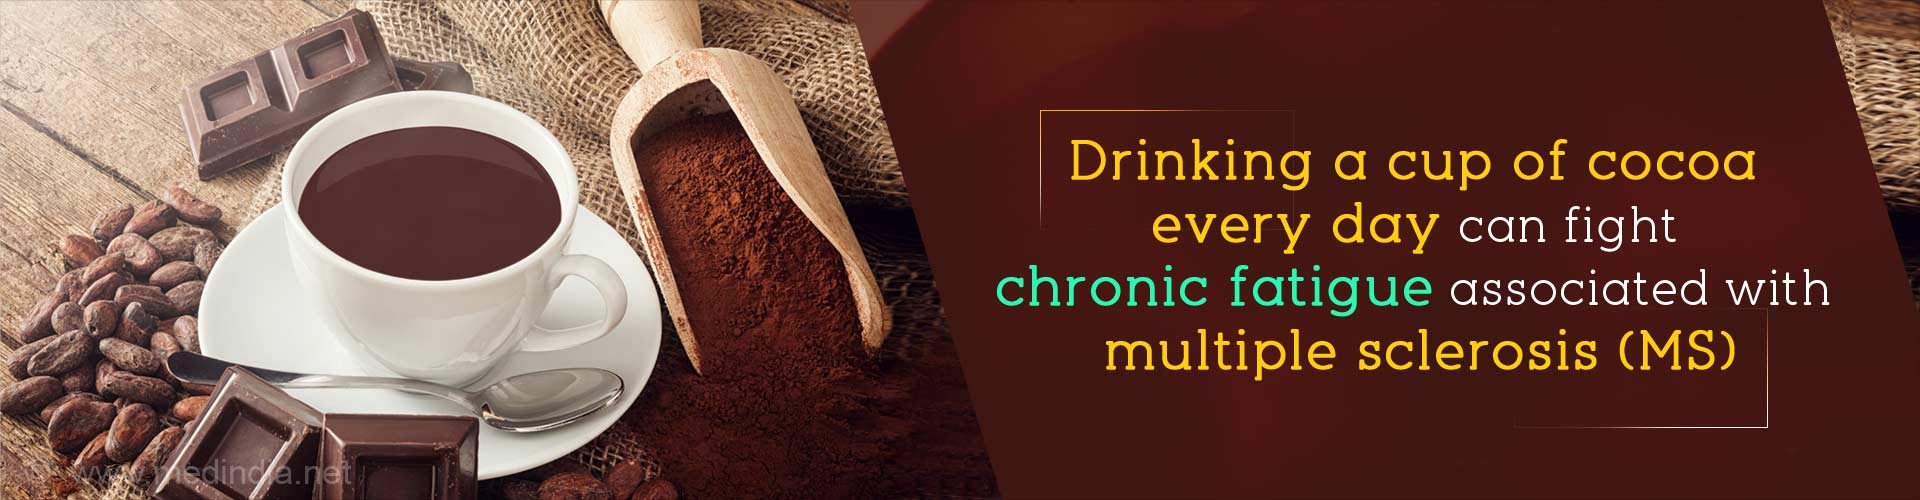 Drinking a cup of cocoa every day can fight chronic fatigue associated with multiple sclerosis (MS).